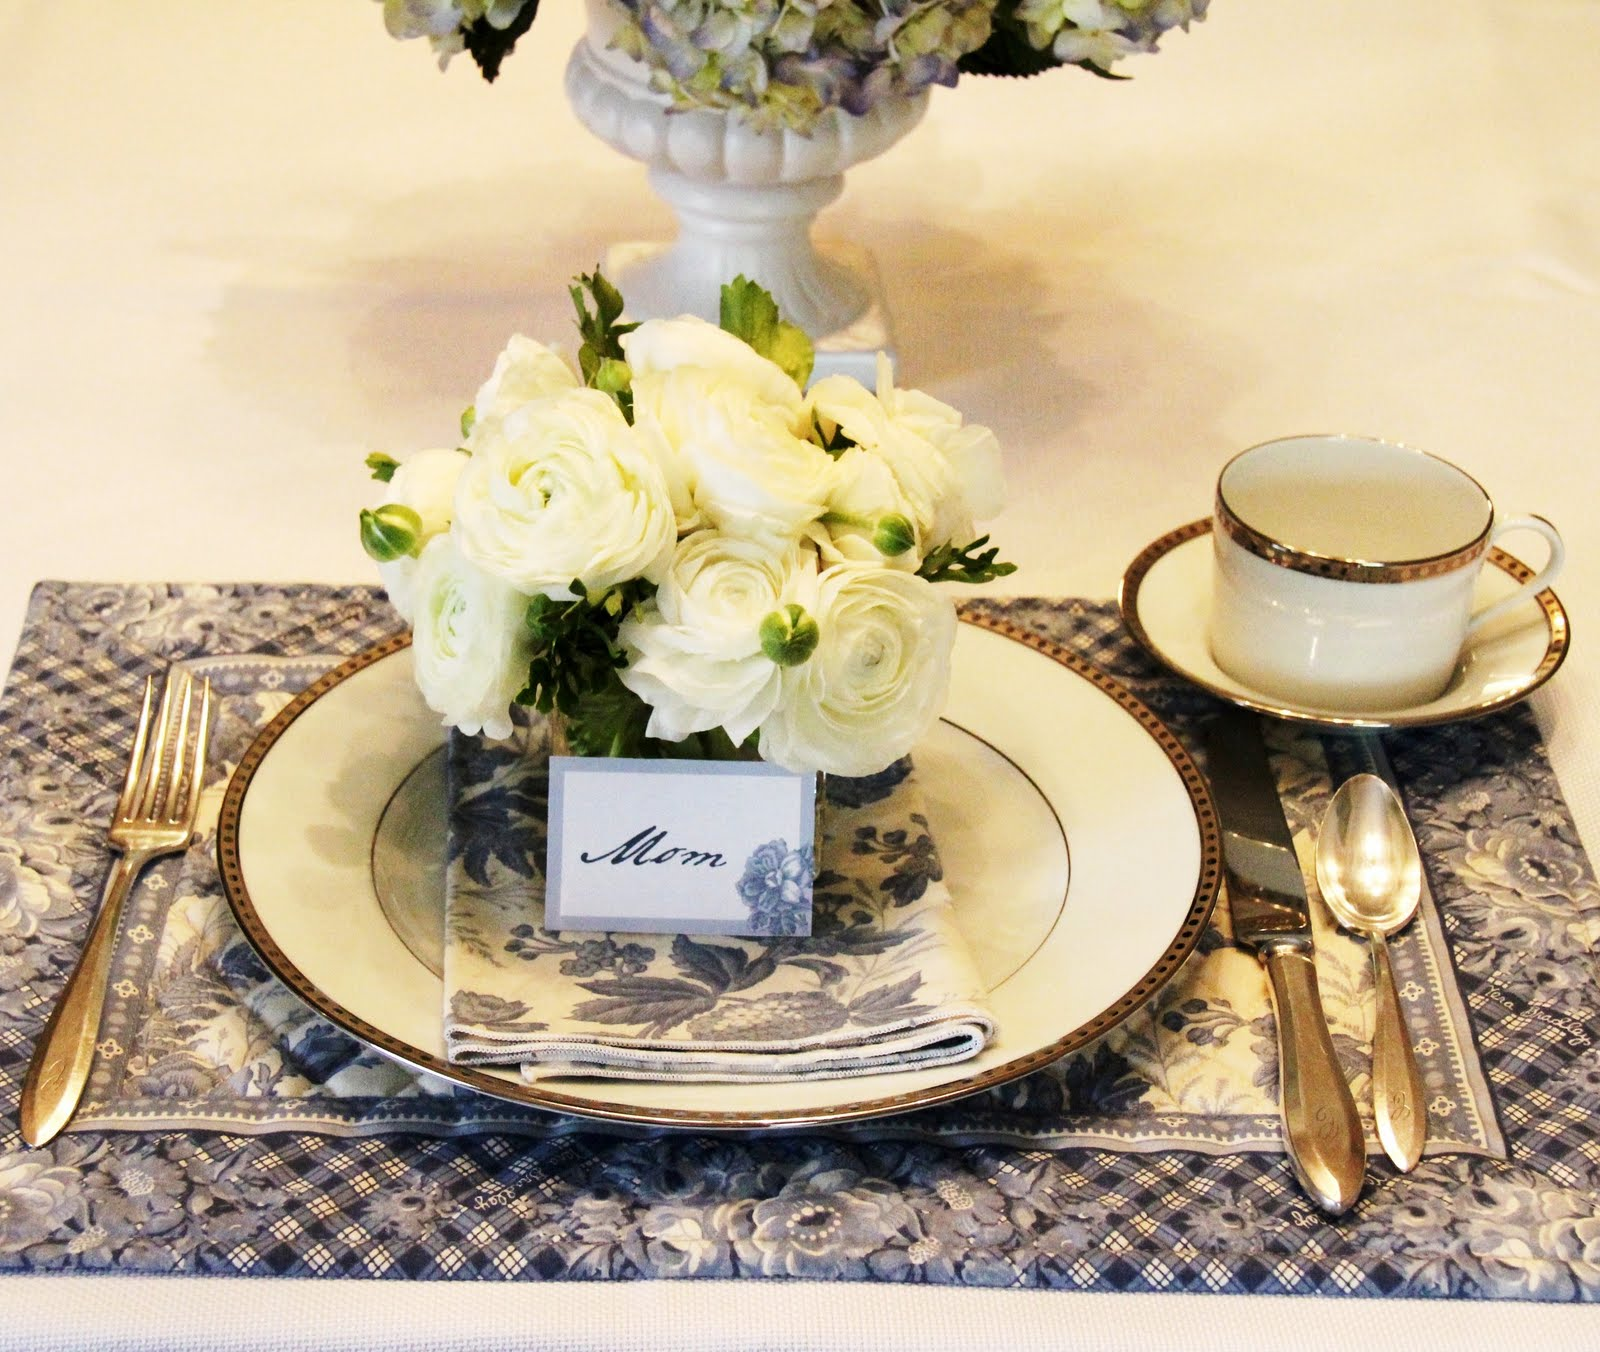 Centerpiece A Brunch Deserves Beautiful Yet Simple Using Garden Flowers Such As Hydrangea Is Always Nice Choice